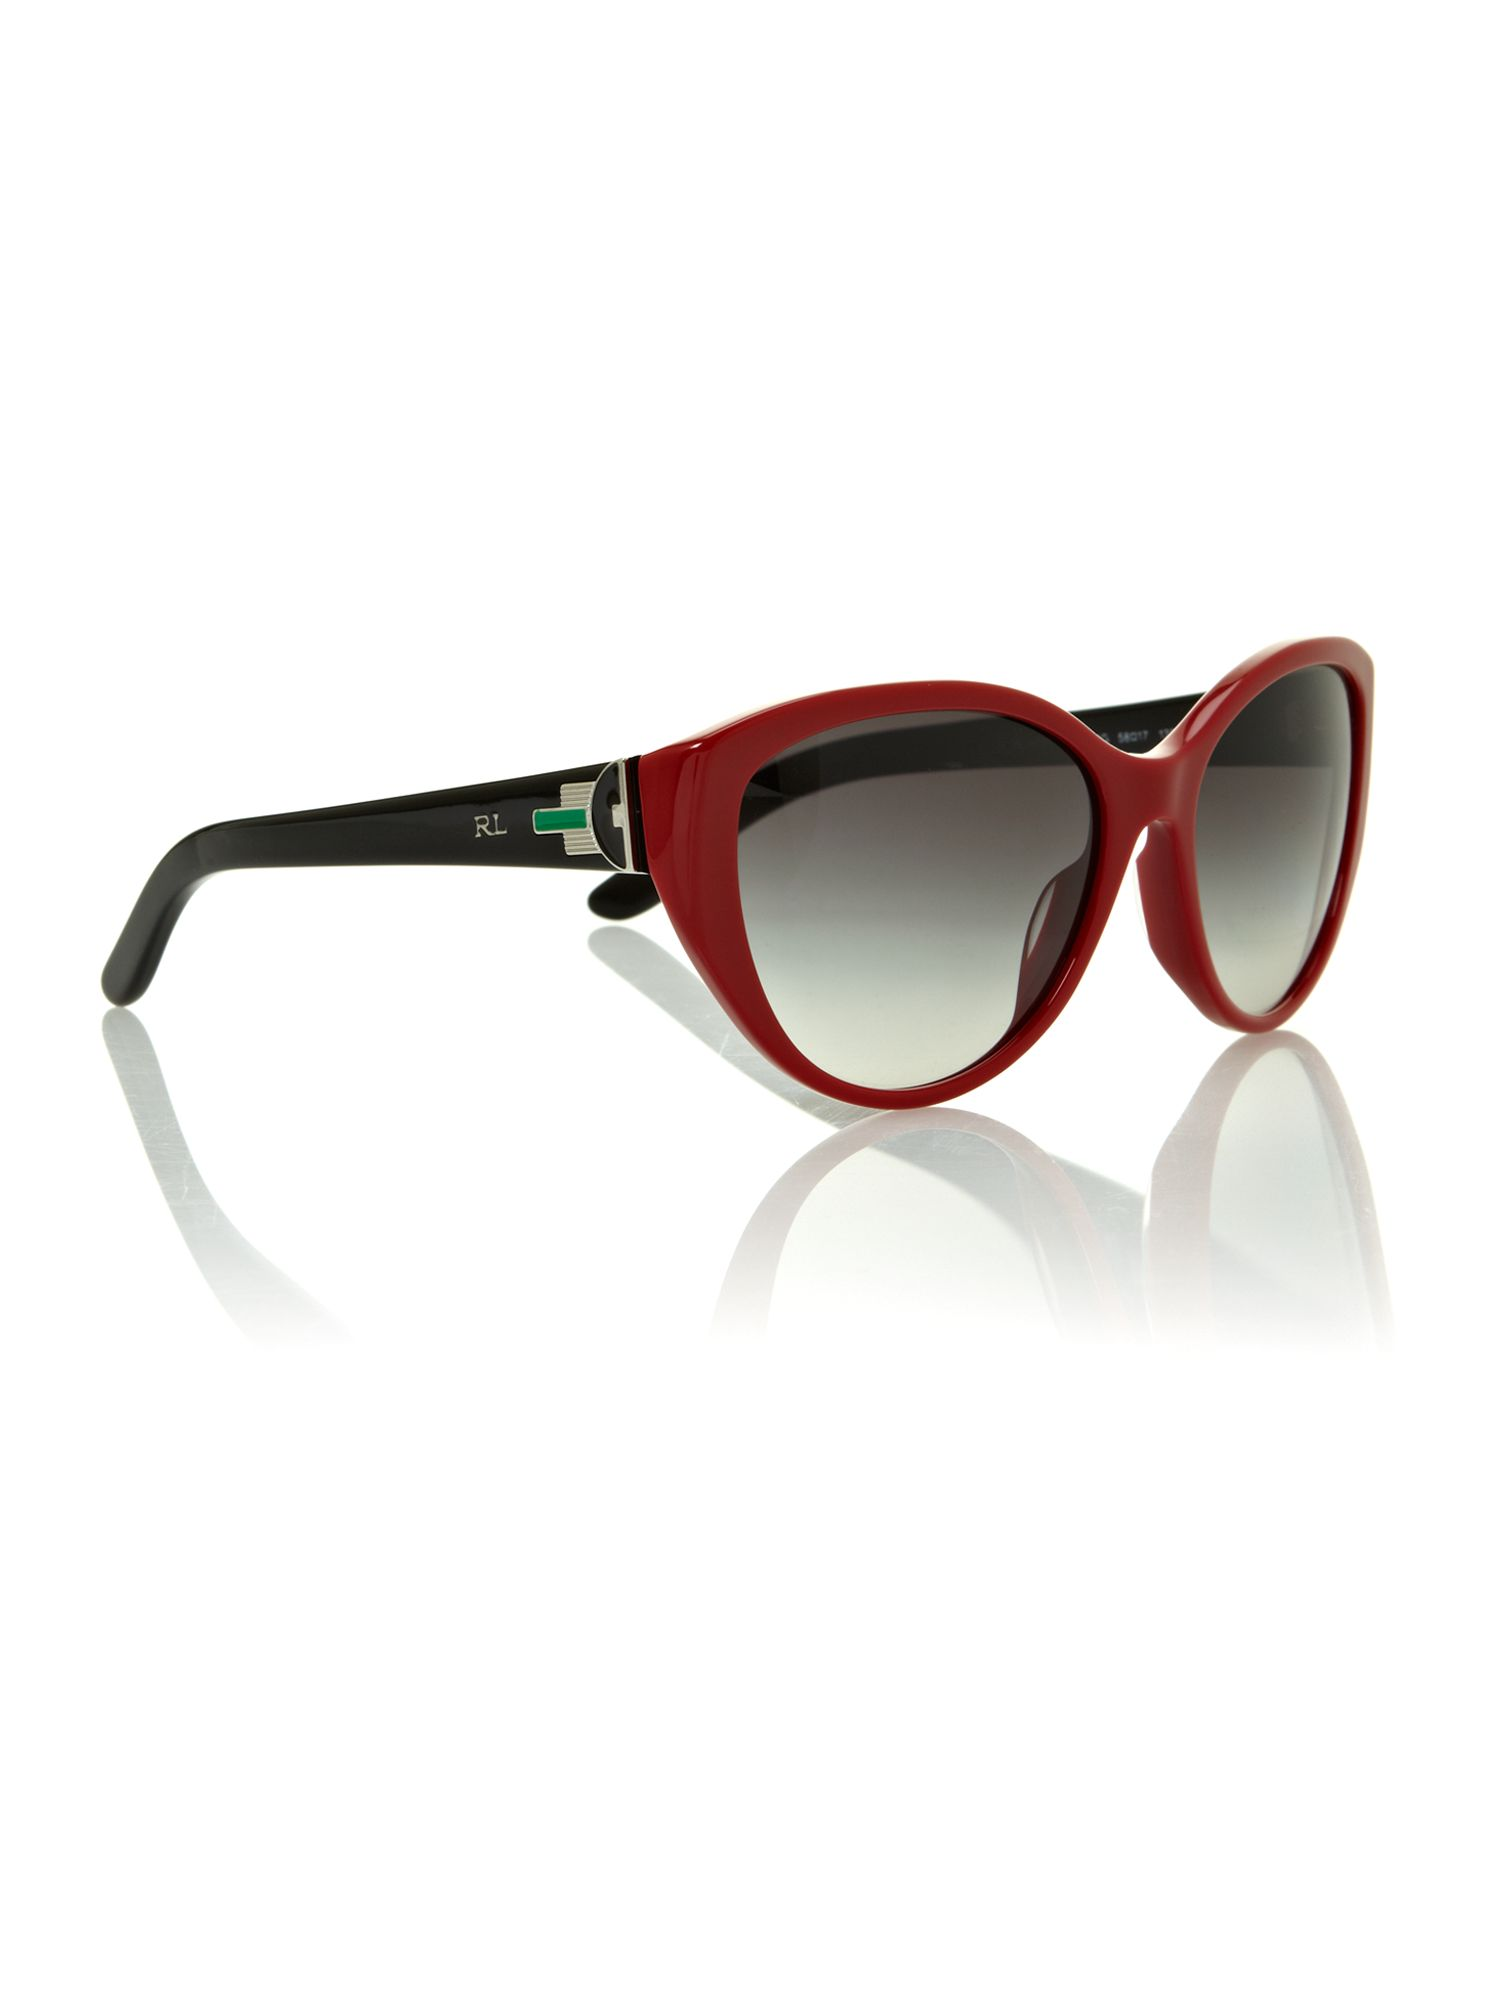 Ladies RL8098 art deco sunglasses